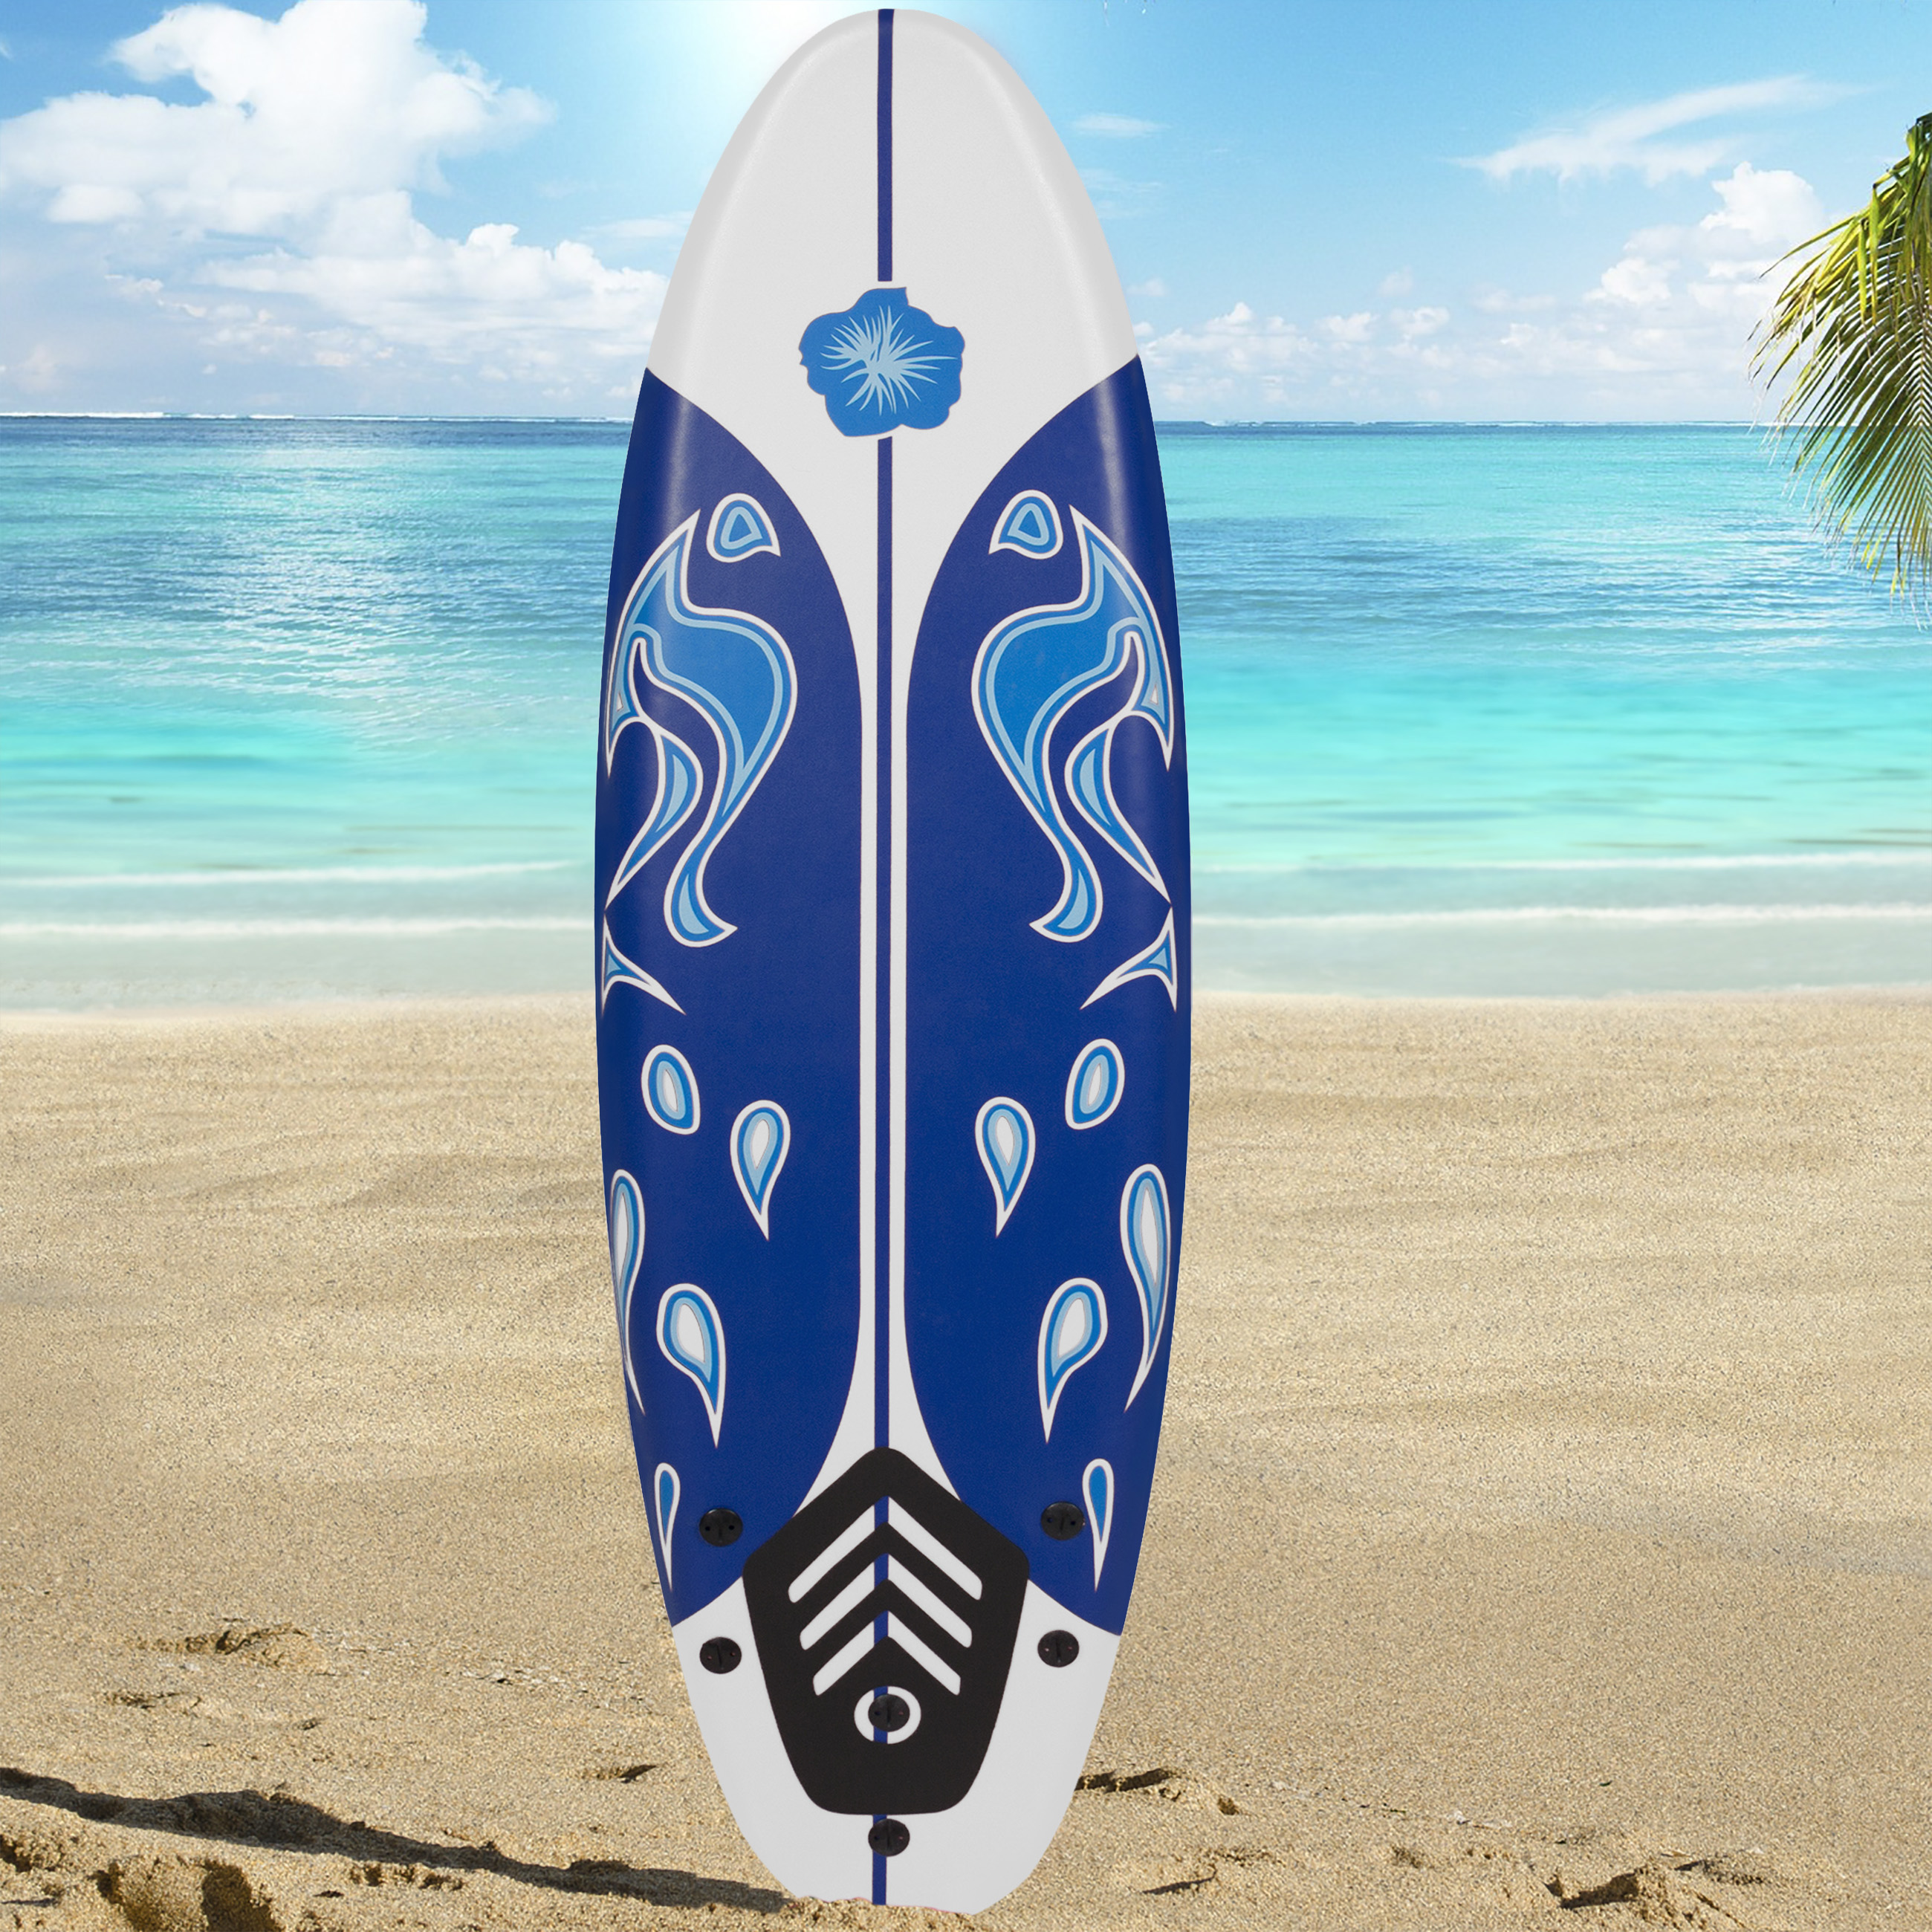 Surfboard 6' Foamie Board Surfboards Surfing Surf Beach Ocean Body Boarding New